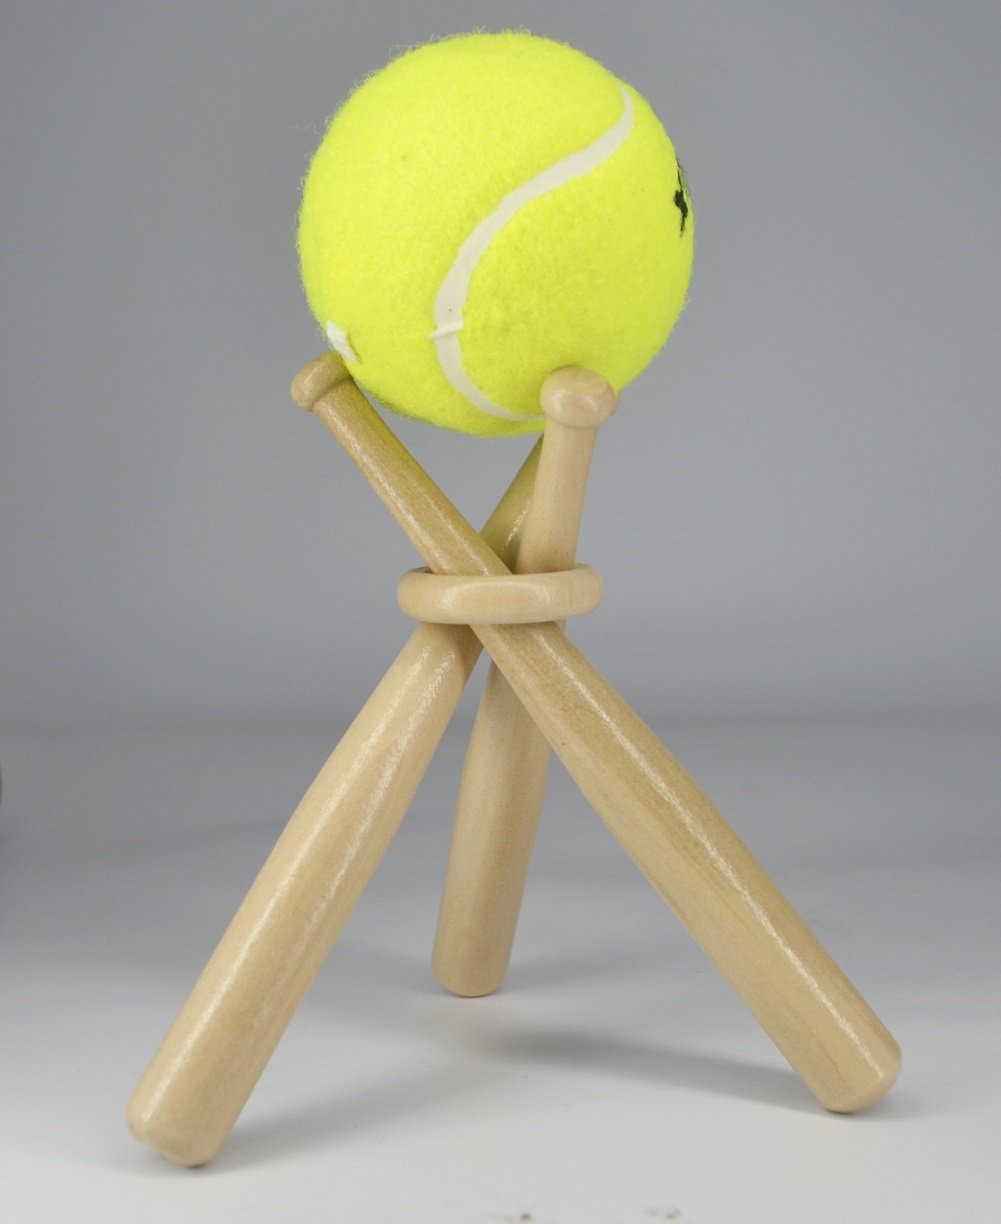 Amazon.com: Wooden Baseball Display Stand Holder -Consists of 3 Mini Baseball Bat (1 Pack): Kitchen & Dining